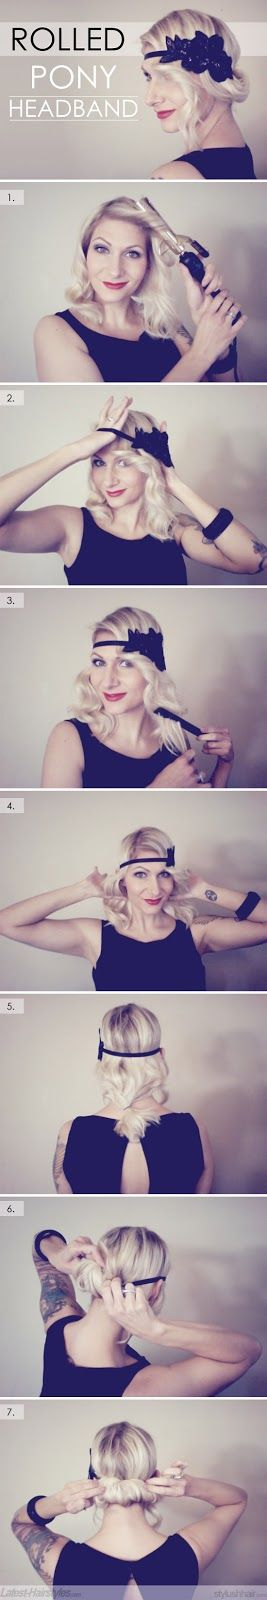 Confessions of a Hairstylist Hair Blog by Jenny Strebe: Two Pic's of the week! Rolled-Pony Headband